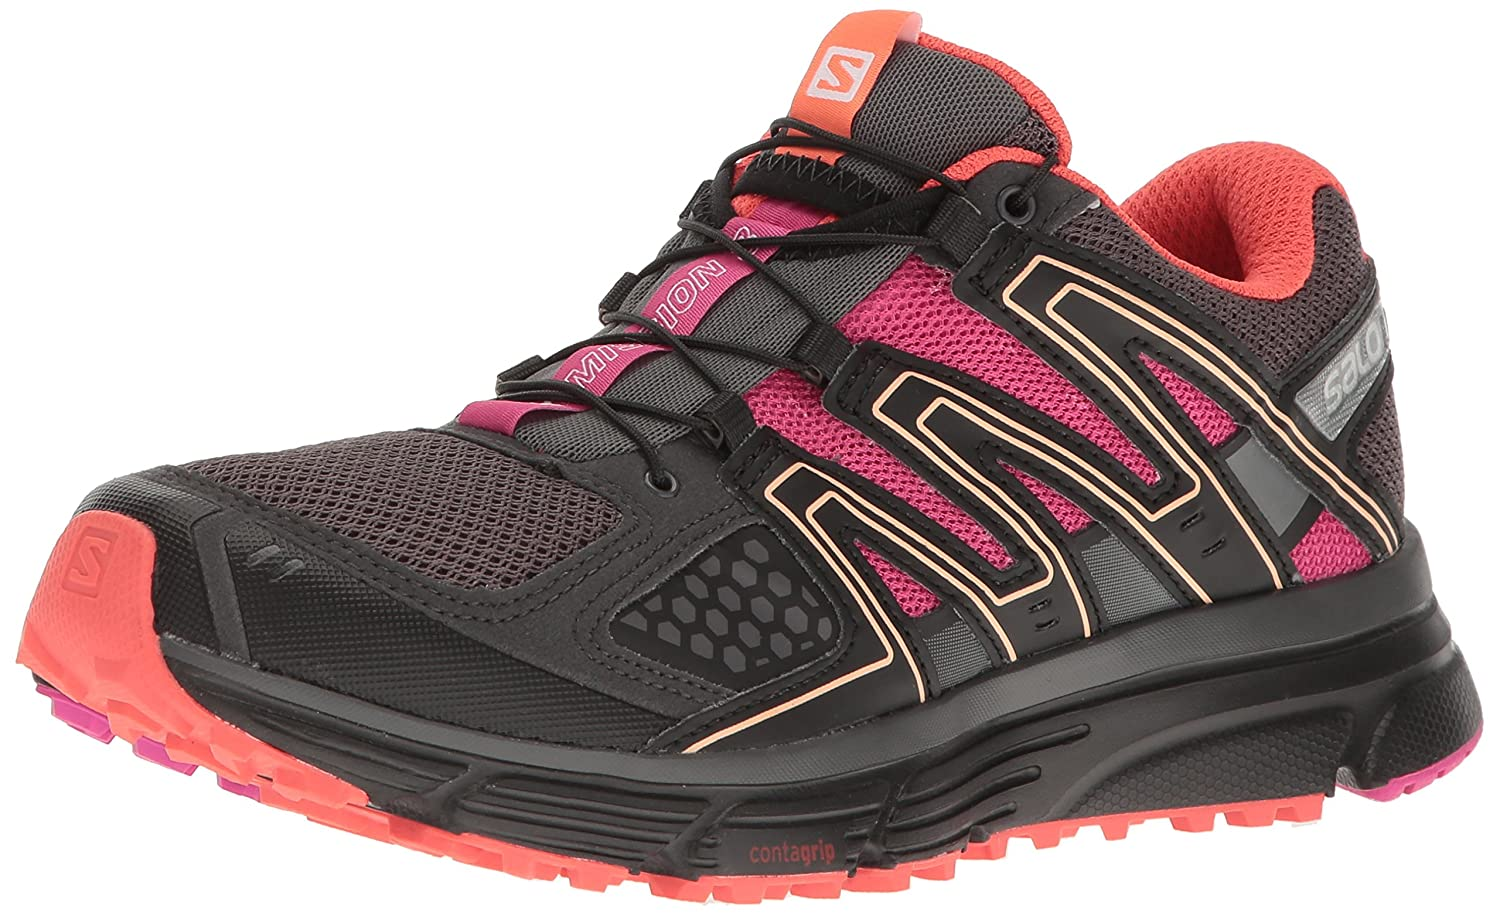 Salomon Women's X-Mission 3 W-w B01HD210UQ 6 B(M) US|Magnet/Black/Rose Violet